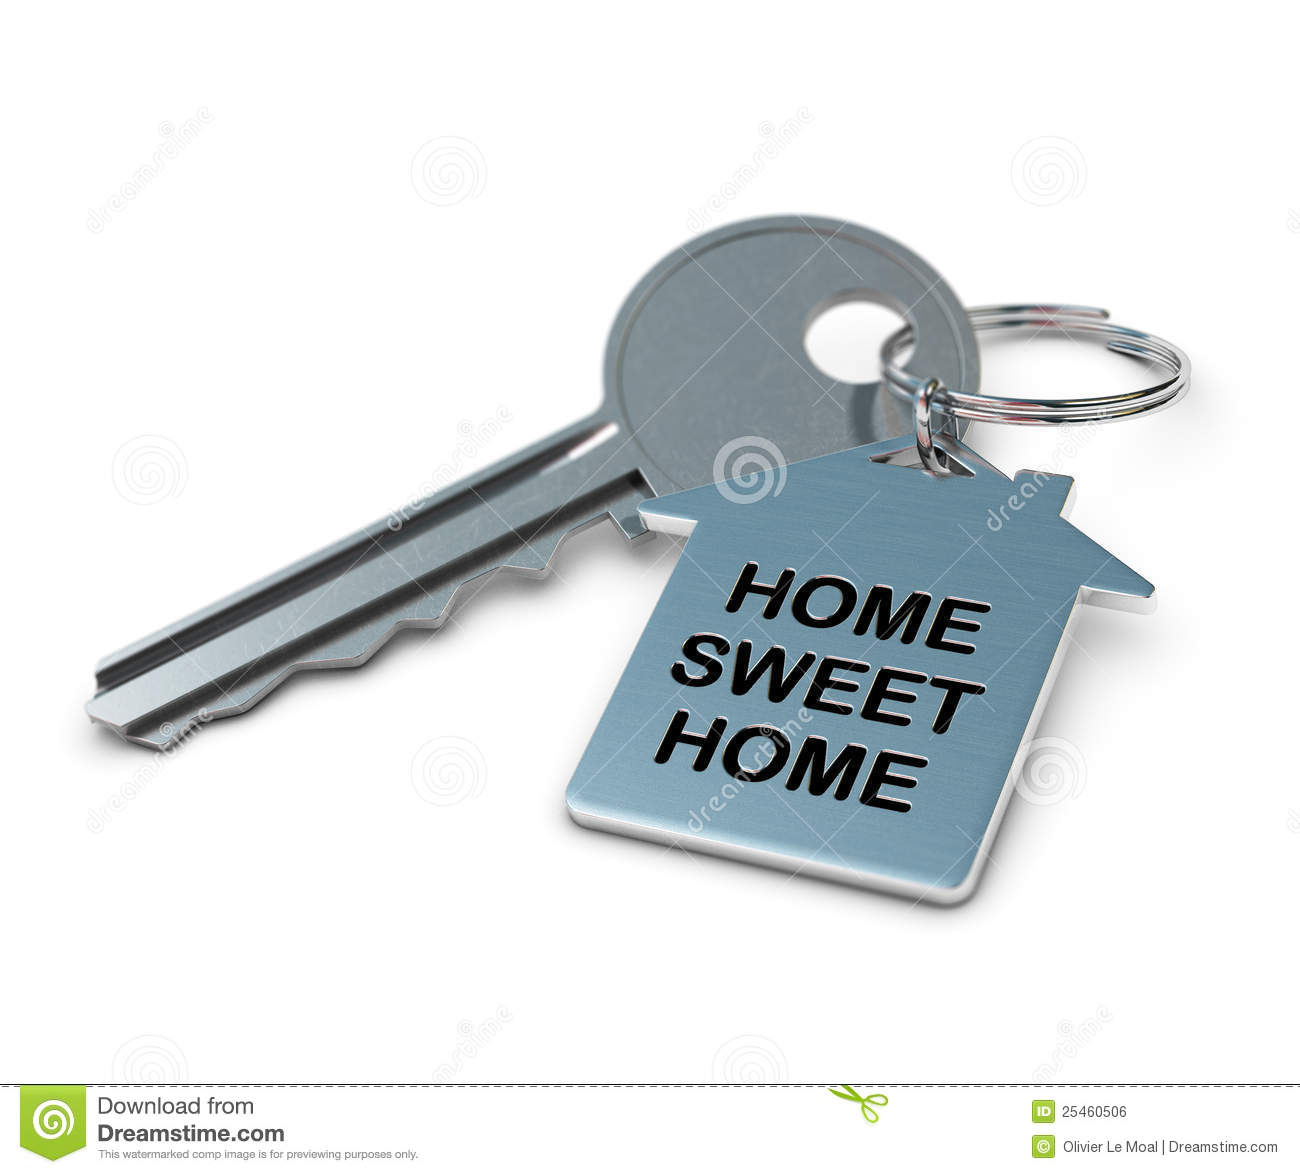 Home sweet home written onto a metal keyring, home shape. metallic key